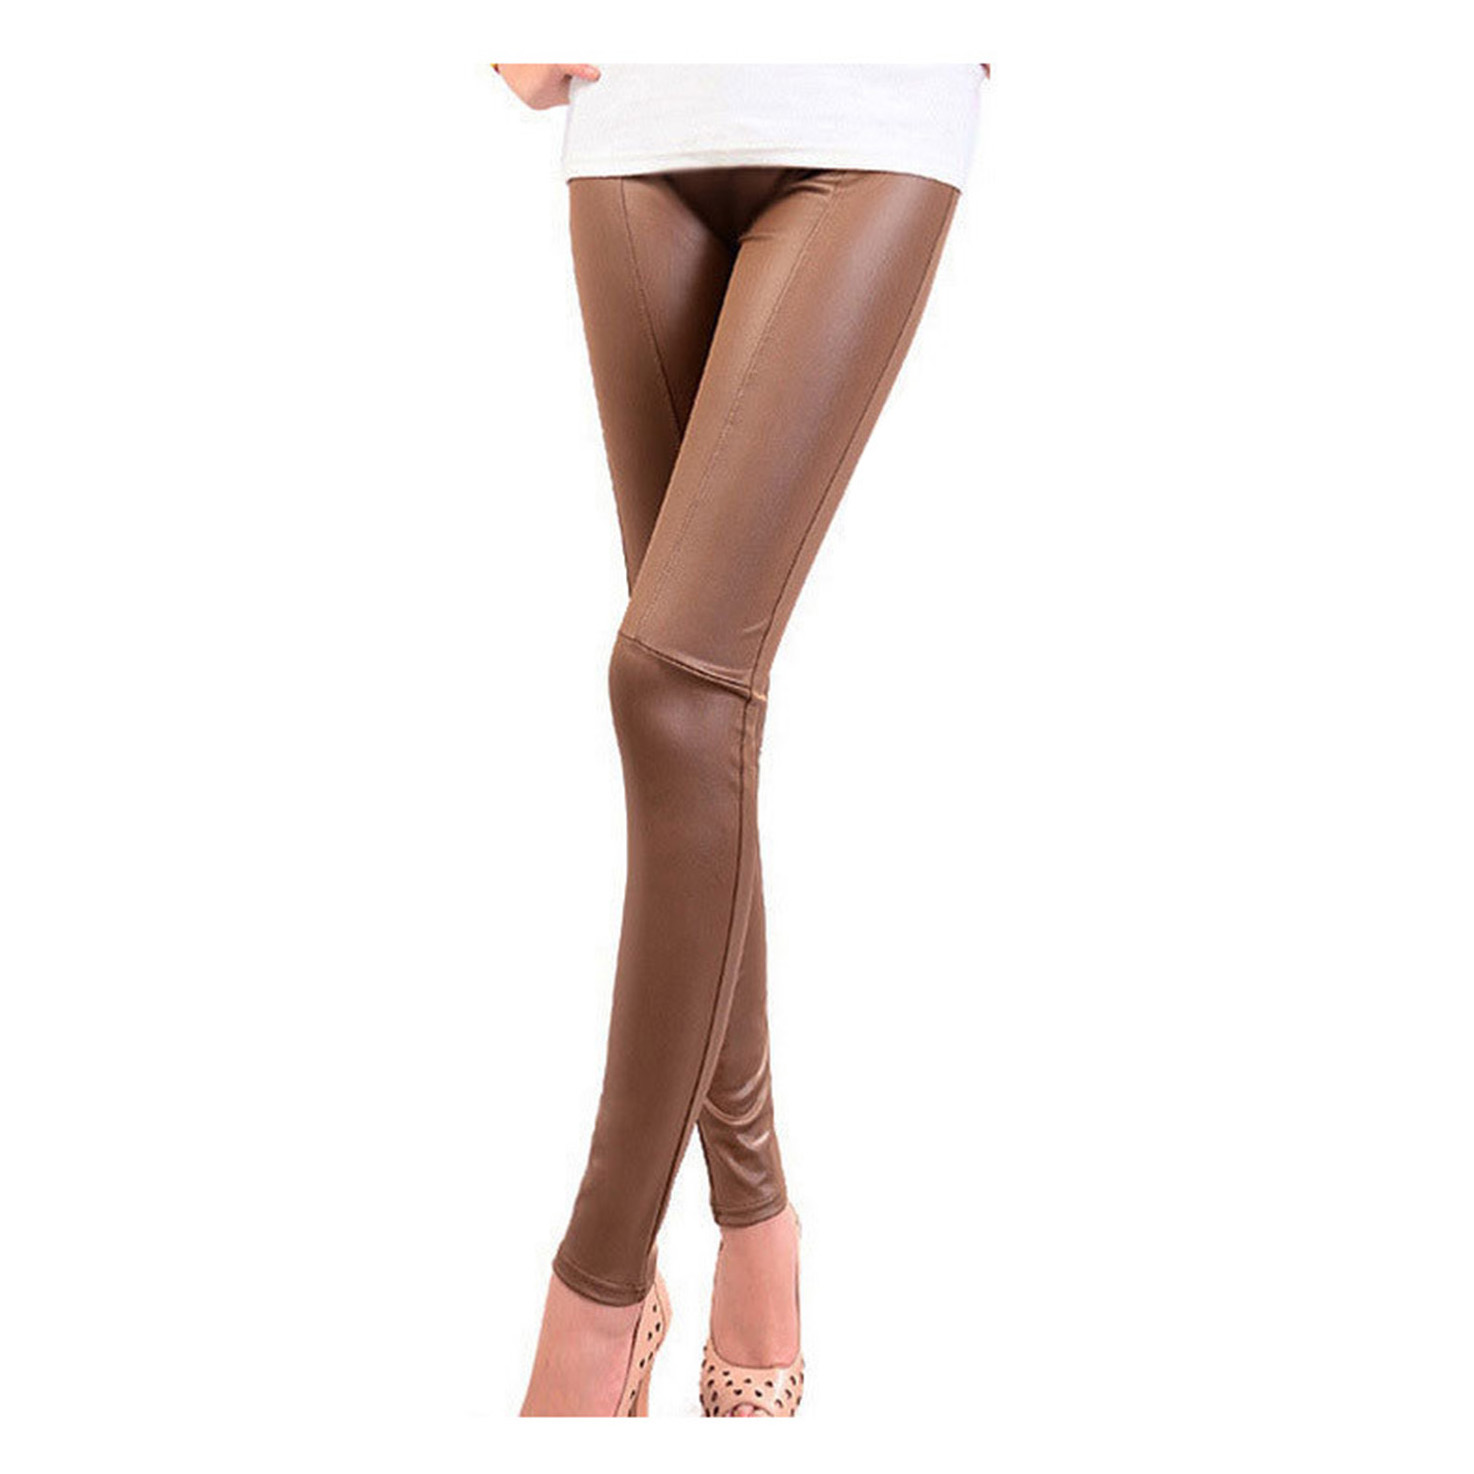 MOCH New Arrival Capris Leggings Stretch Leggings Jeggings Treggings Leatherette Fashion 4 size 3 Colors